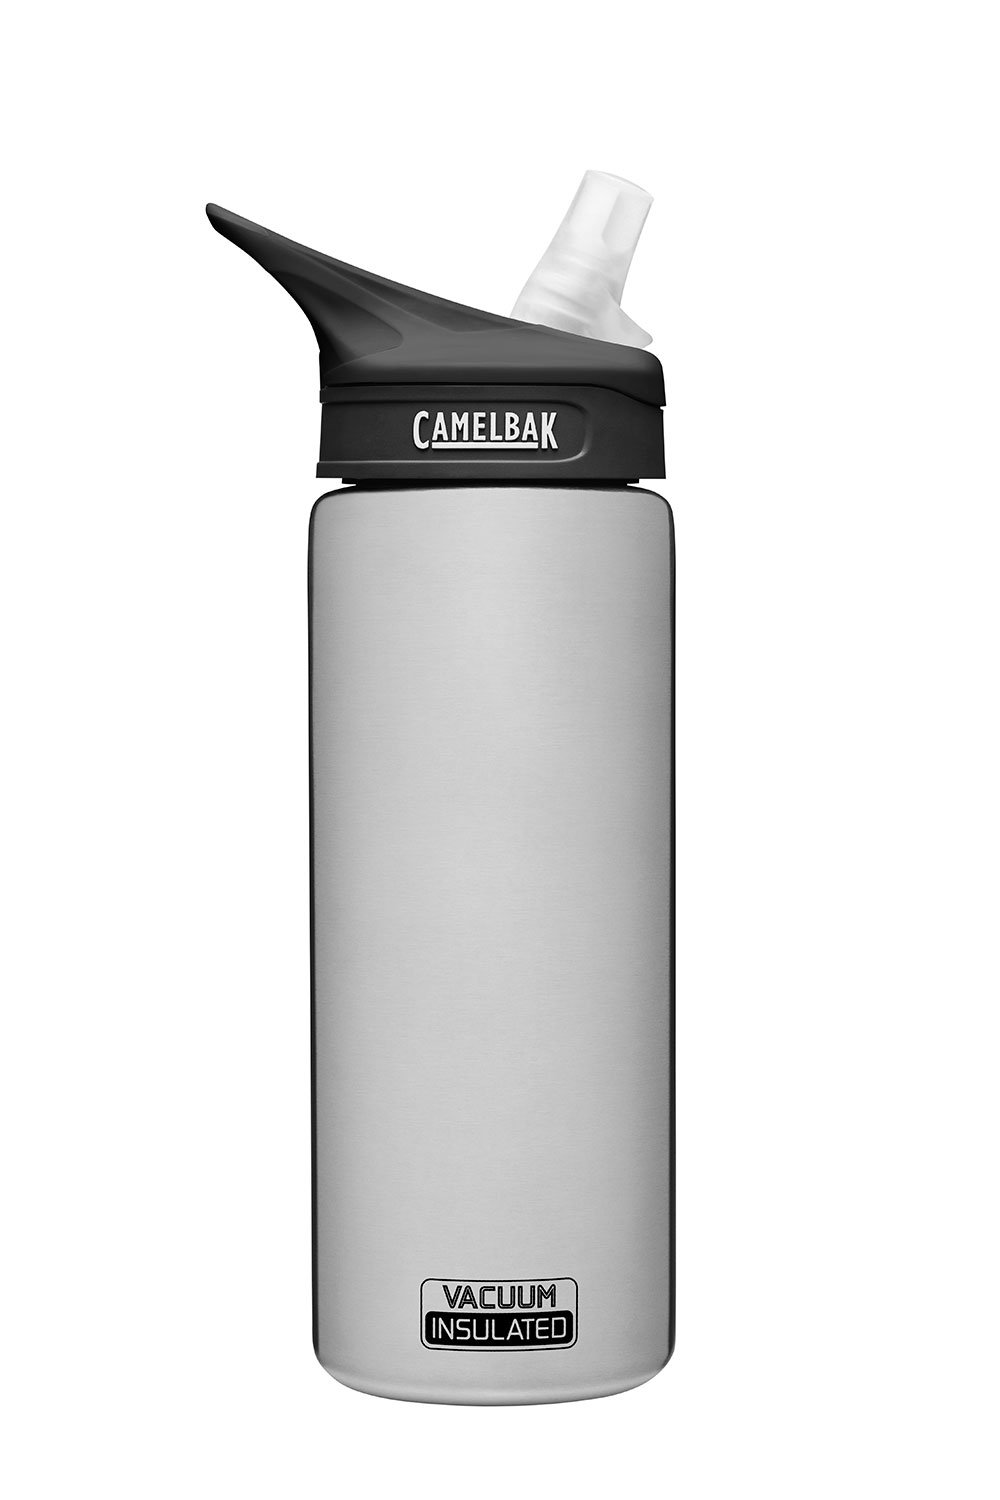 Camelback Eddy Stainless Steel Insulated Water Bottle, 20 oz - My go-to for a sports water bottle. I prefer a flip top for when I work out (for those quick / desperate swigs of water).